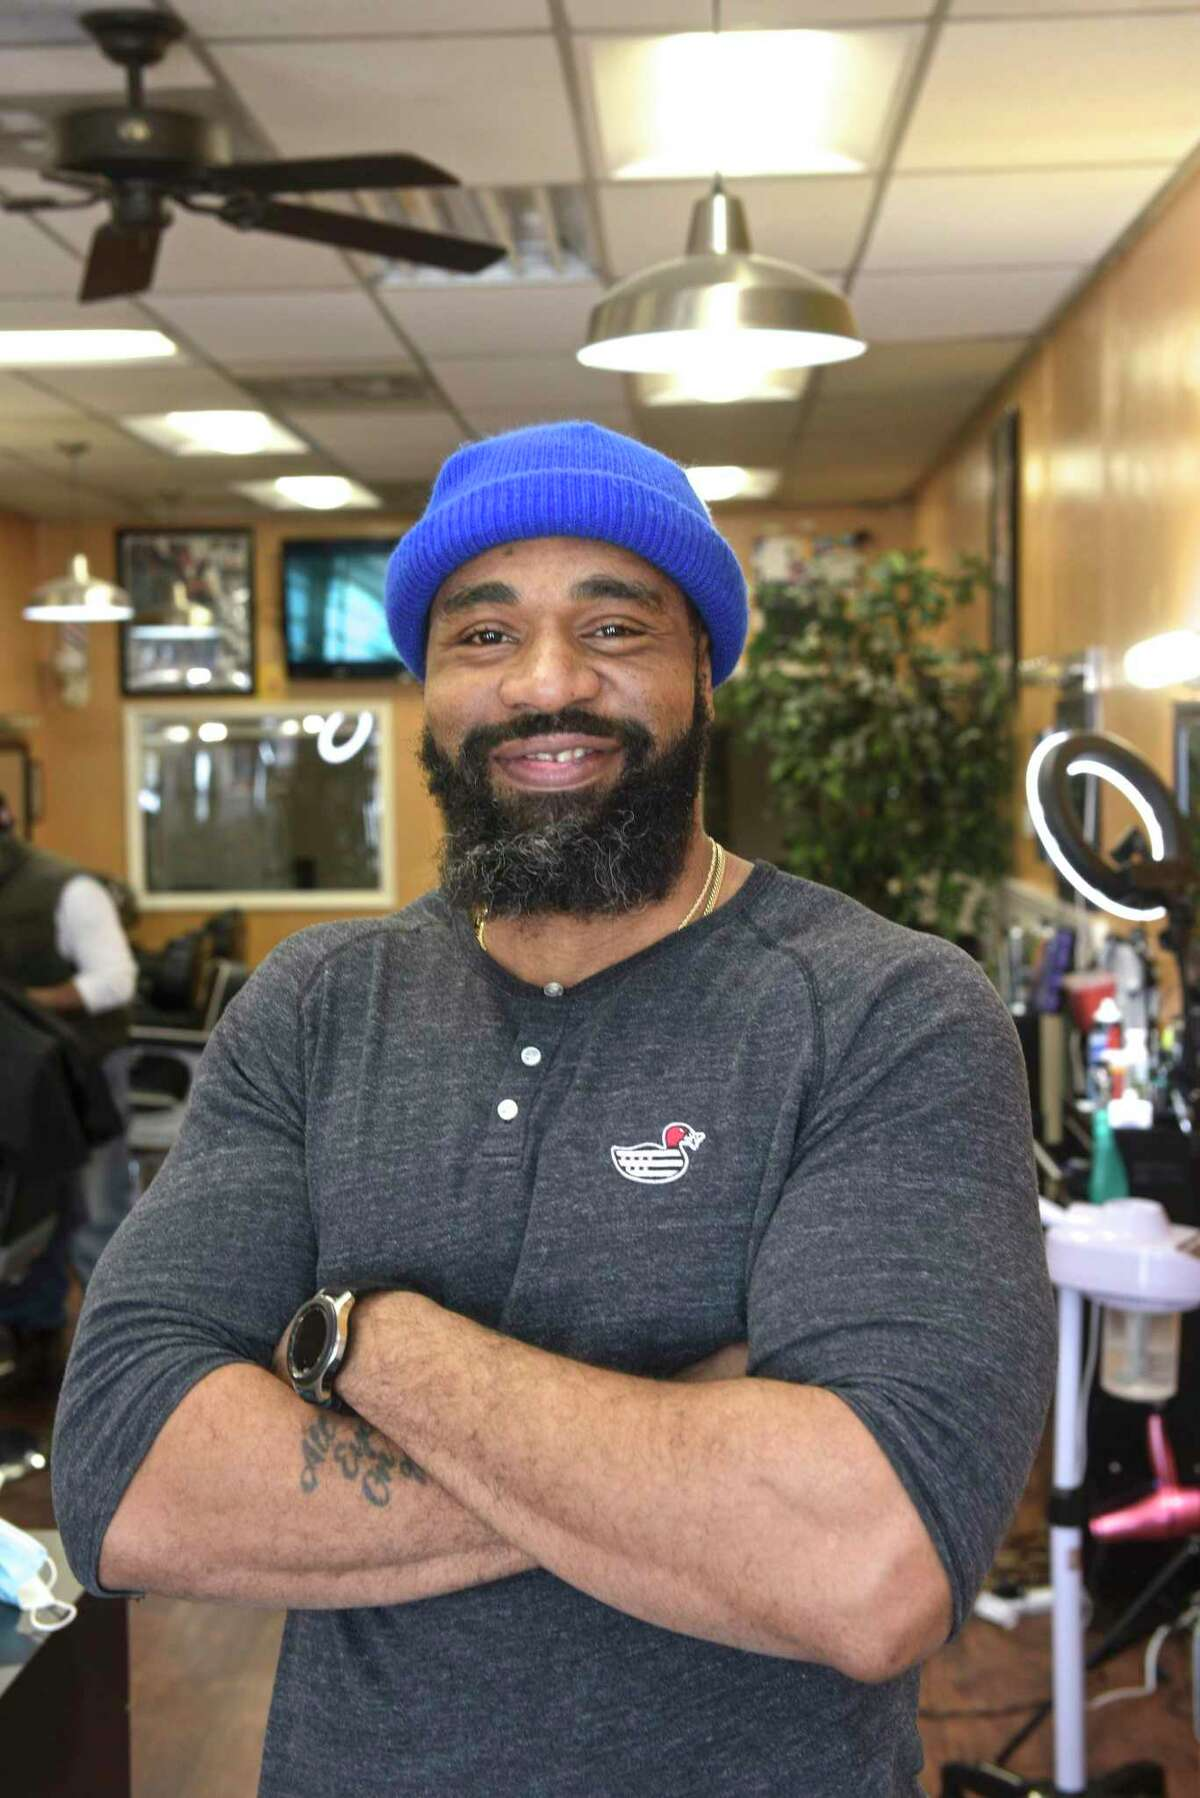 """Everton Stewart in his Barbershop on Friday afternoon. Stewart has had an apprentice in the shop. An effort led by U.S. Rep. Jahana Hayes that would update and expand the national apprenticeship program and bring an annual $2 million to Connecticut to promote the """"earn while you learn"""" model of vocational development. February 12, 2021."""